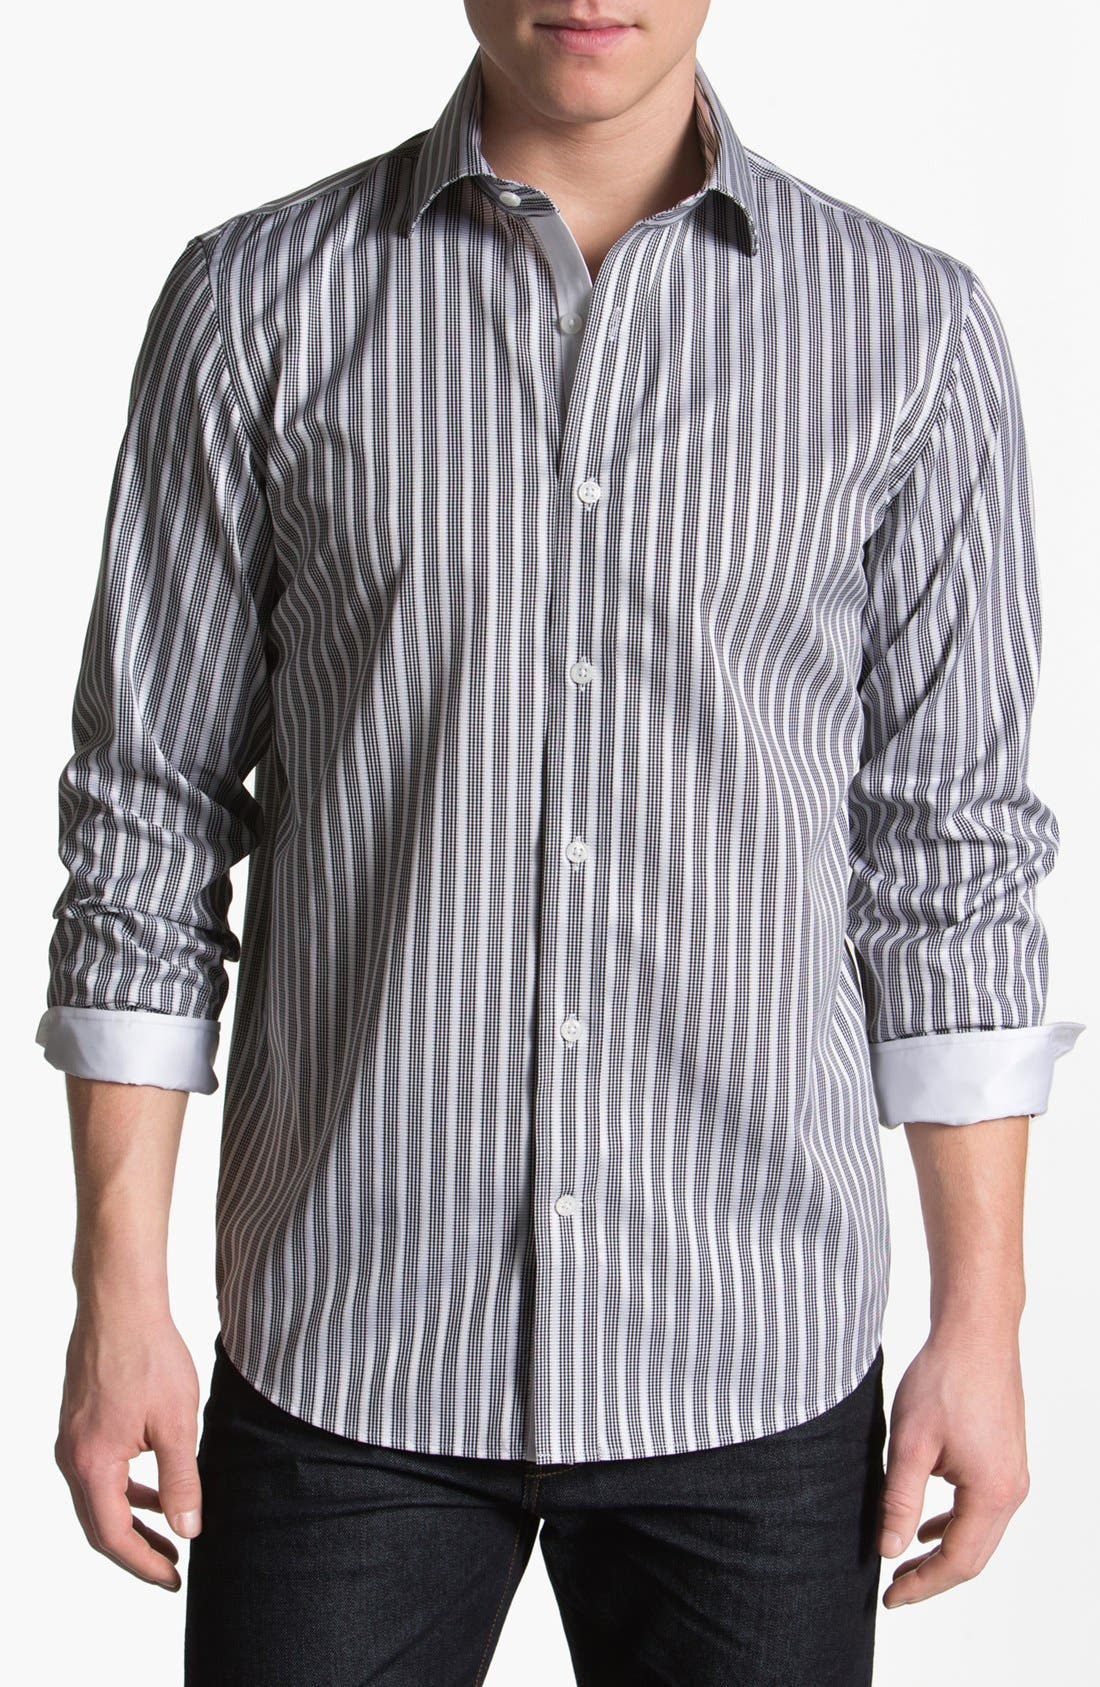 Alternate Image 1 Selected - Report Collection Trim Fit Sport Shirt (Online Only)